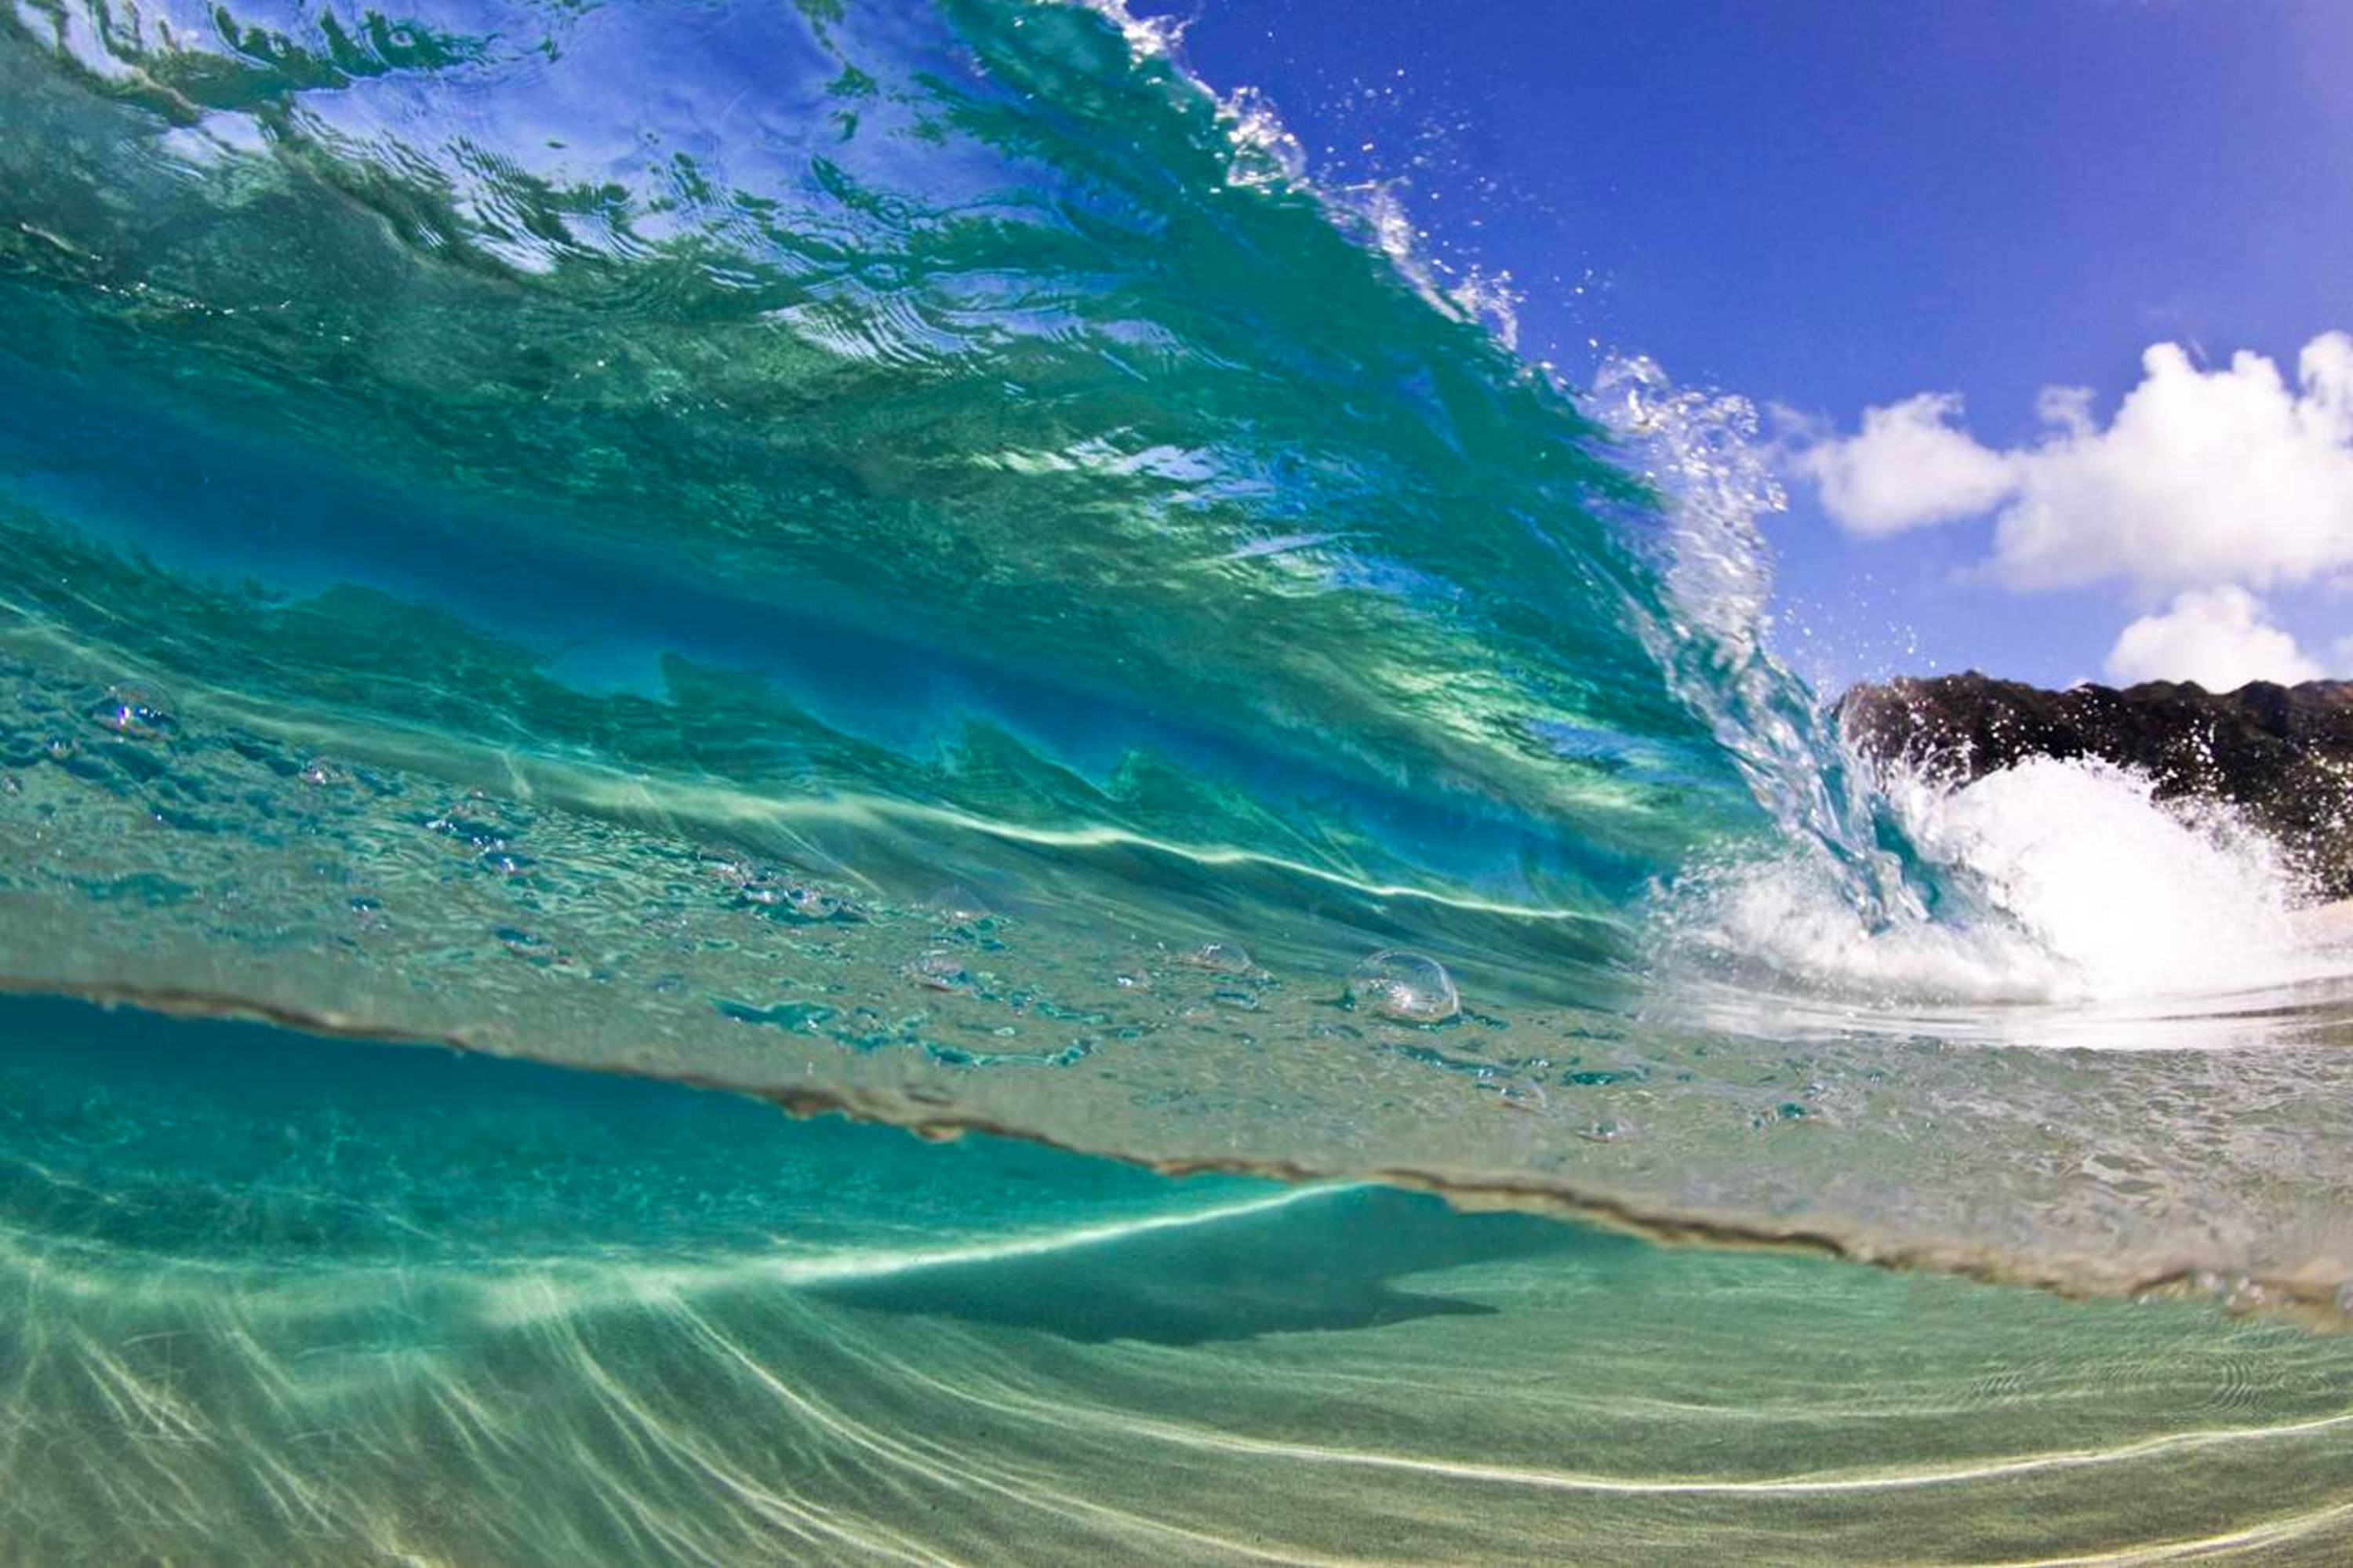 Beach Free Ipad Wallpapers: Surf Beach Wallpaper (53+ Images